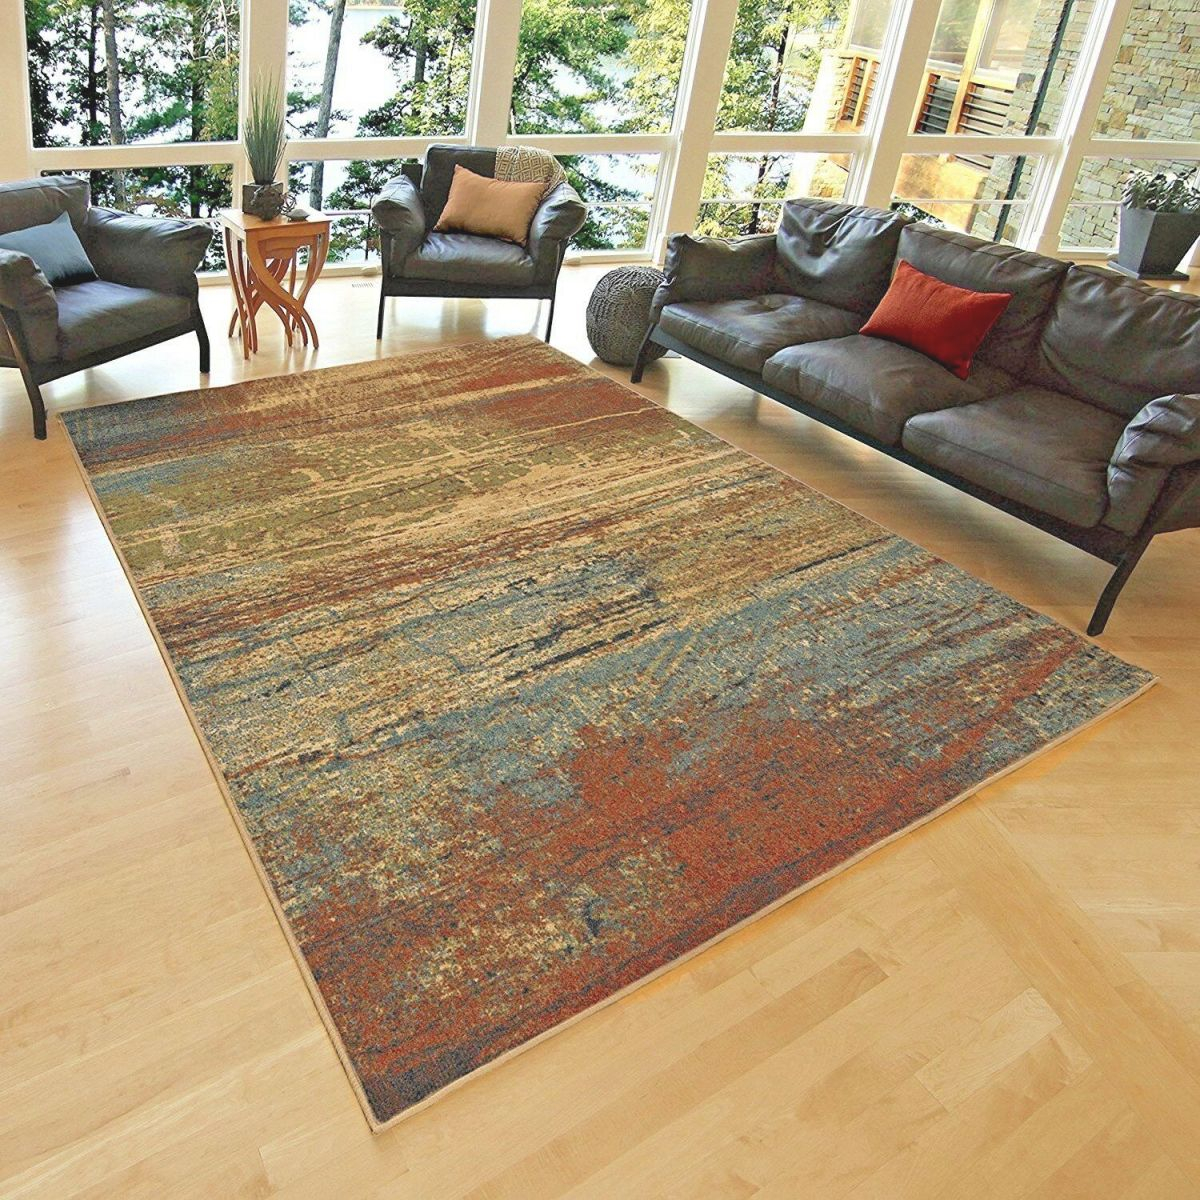 Living Room Rugs - Ictickets regarding Big Area Rugs For Living Room